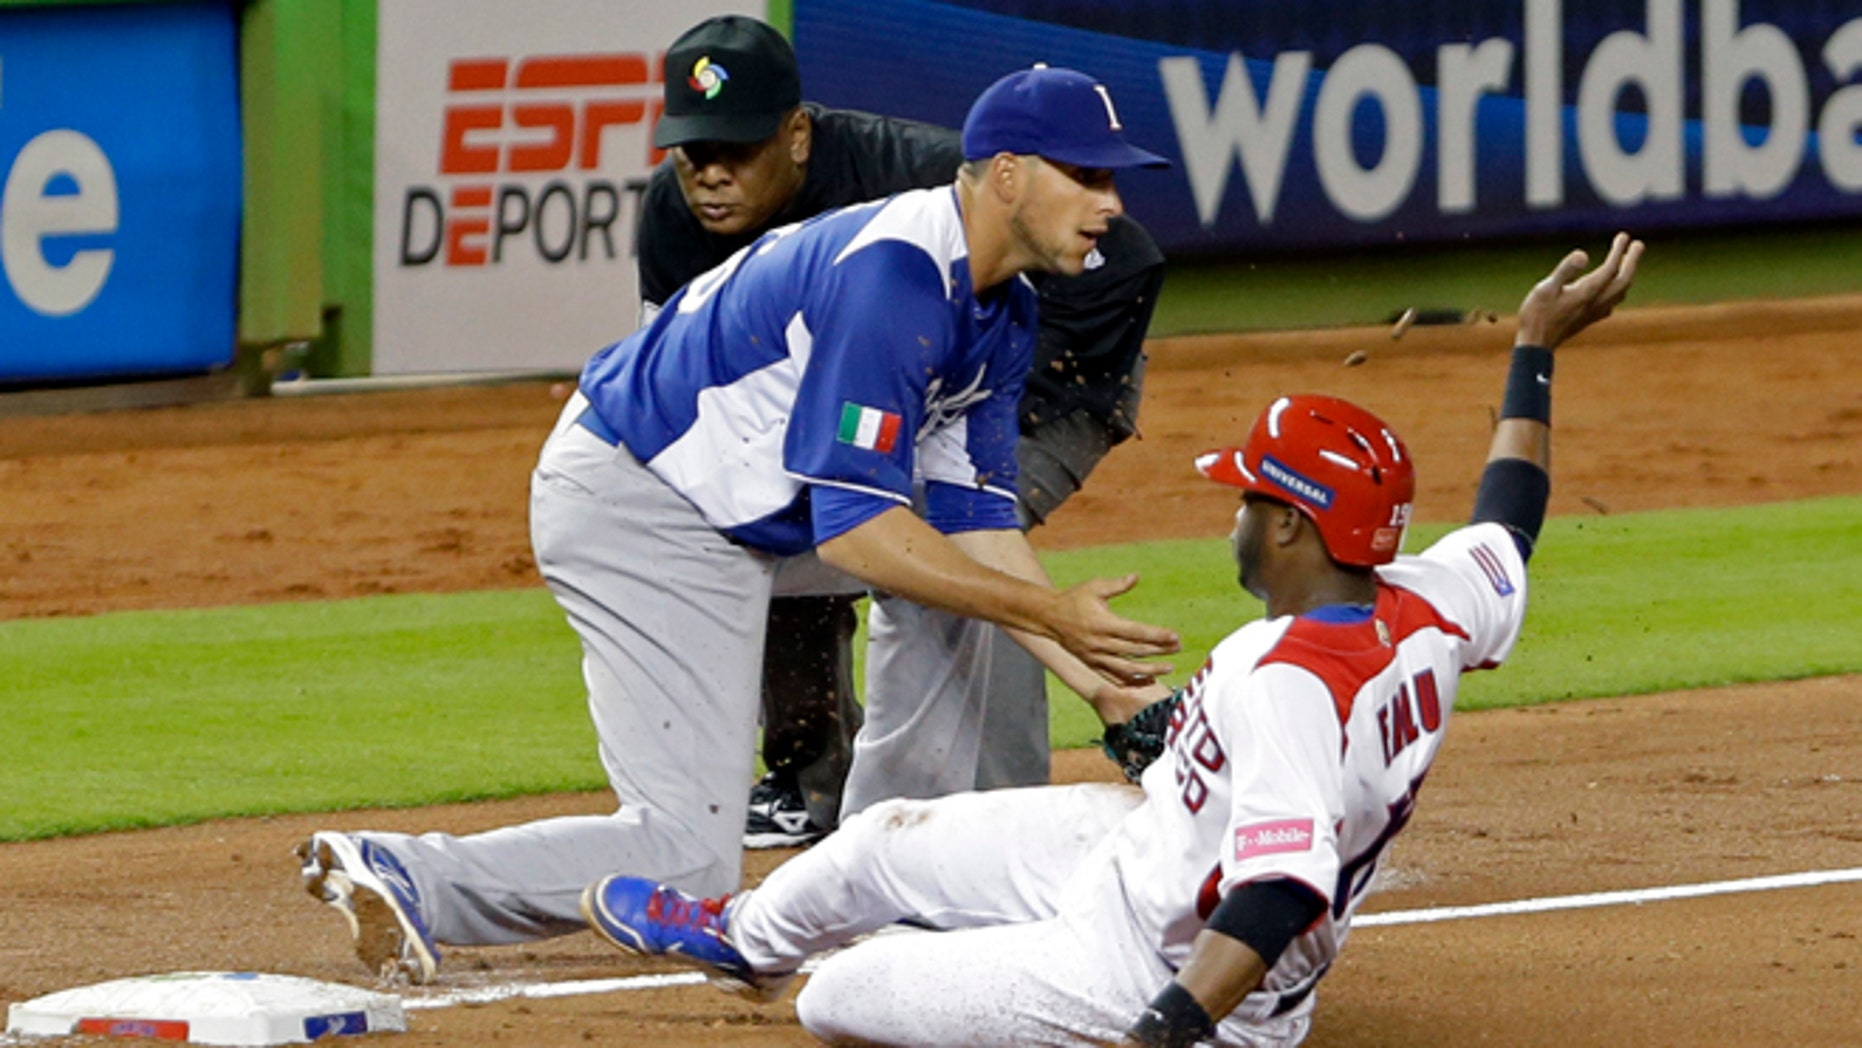 Puerto Rico's Irving Falu slides safely into third on a base hit by teammate Yadier Molina as Italy third baseman Alex Liddi awaits the late throw during the fourth inning of a second-round elimination game of the World Baseball Classic in Miami, Wednesday, March 13, 2013. Third base umpire Edgar Estivison watches the play. (AP Photo/Wilfredo Lee)